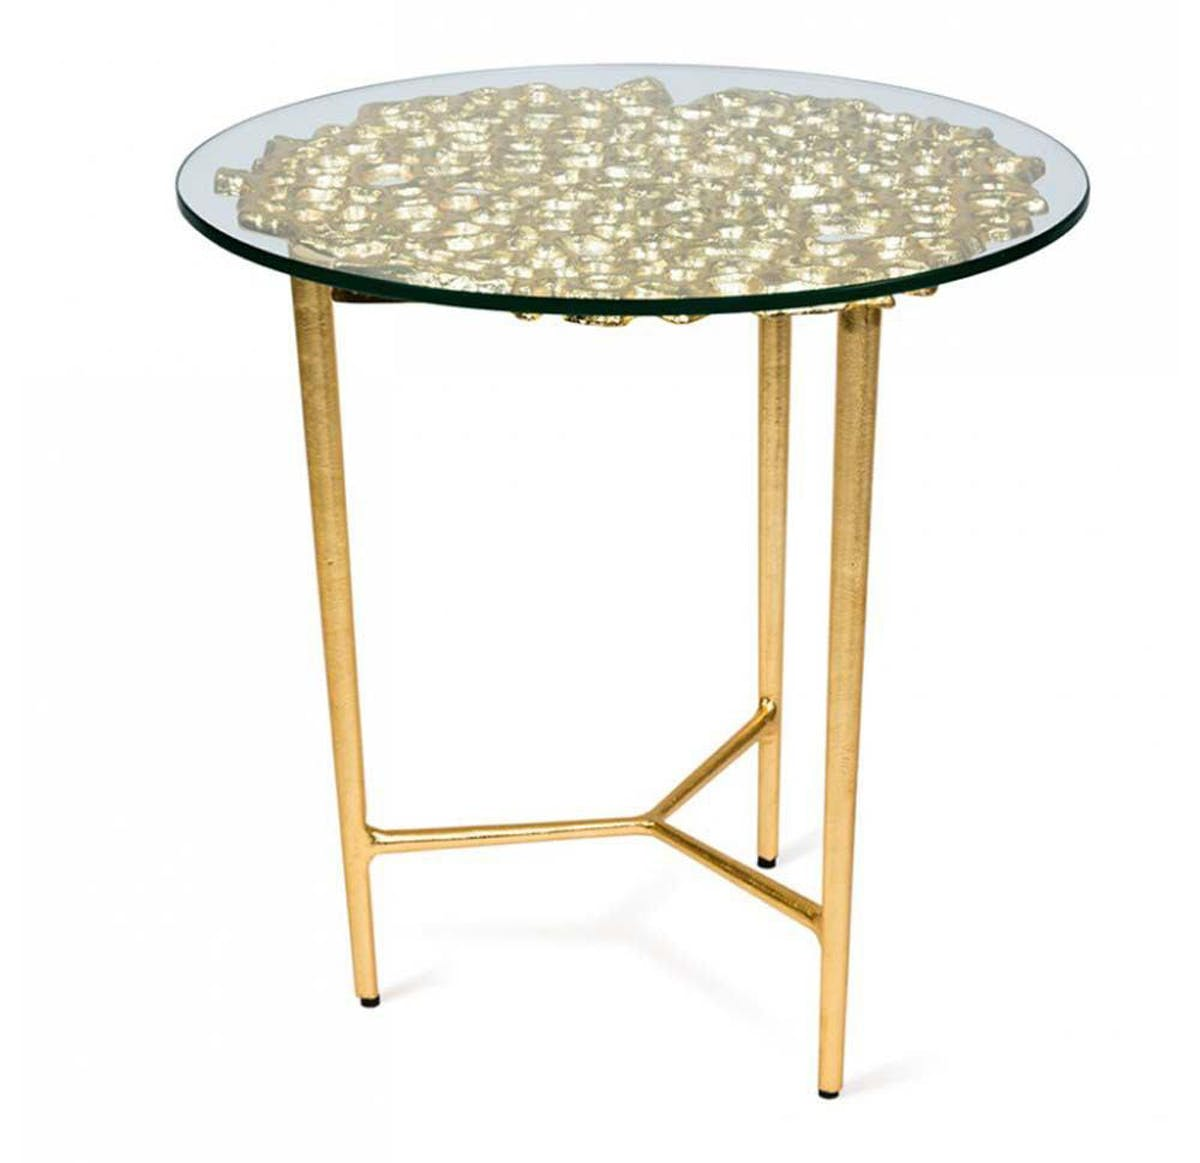 gold leaf design group sponge accent table modish emerald coffee ellipsis off white and end tables distressed entry stacking side vanity small silver lamps tall target lucite